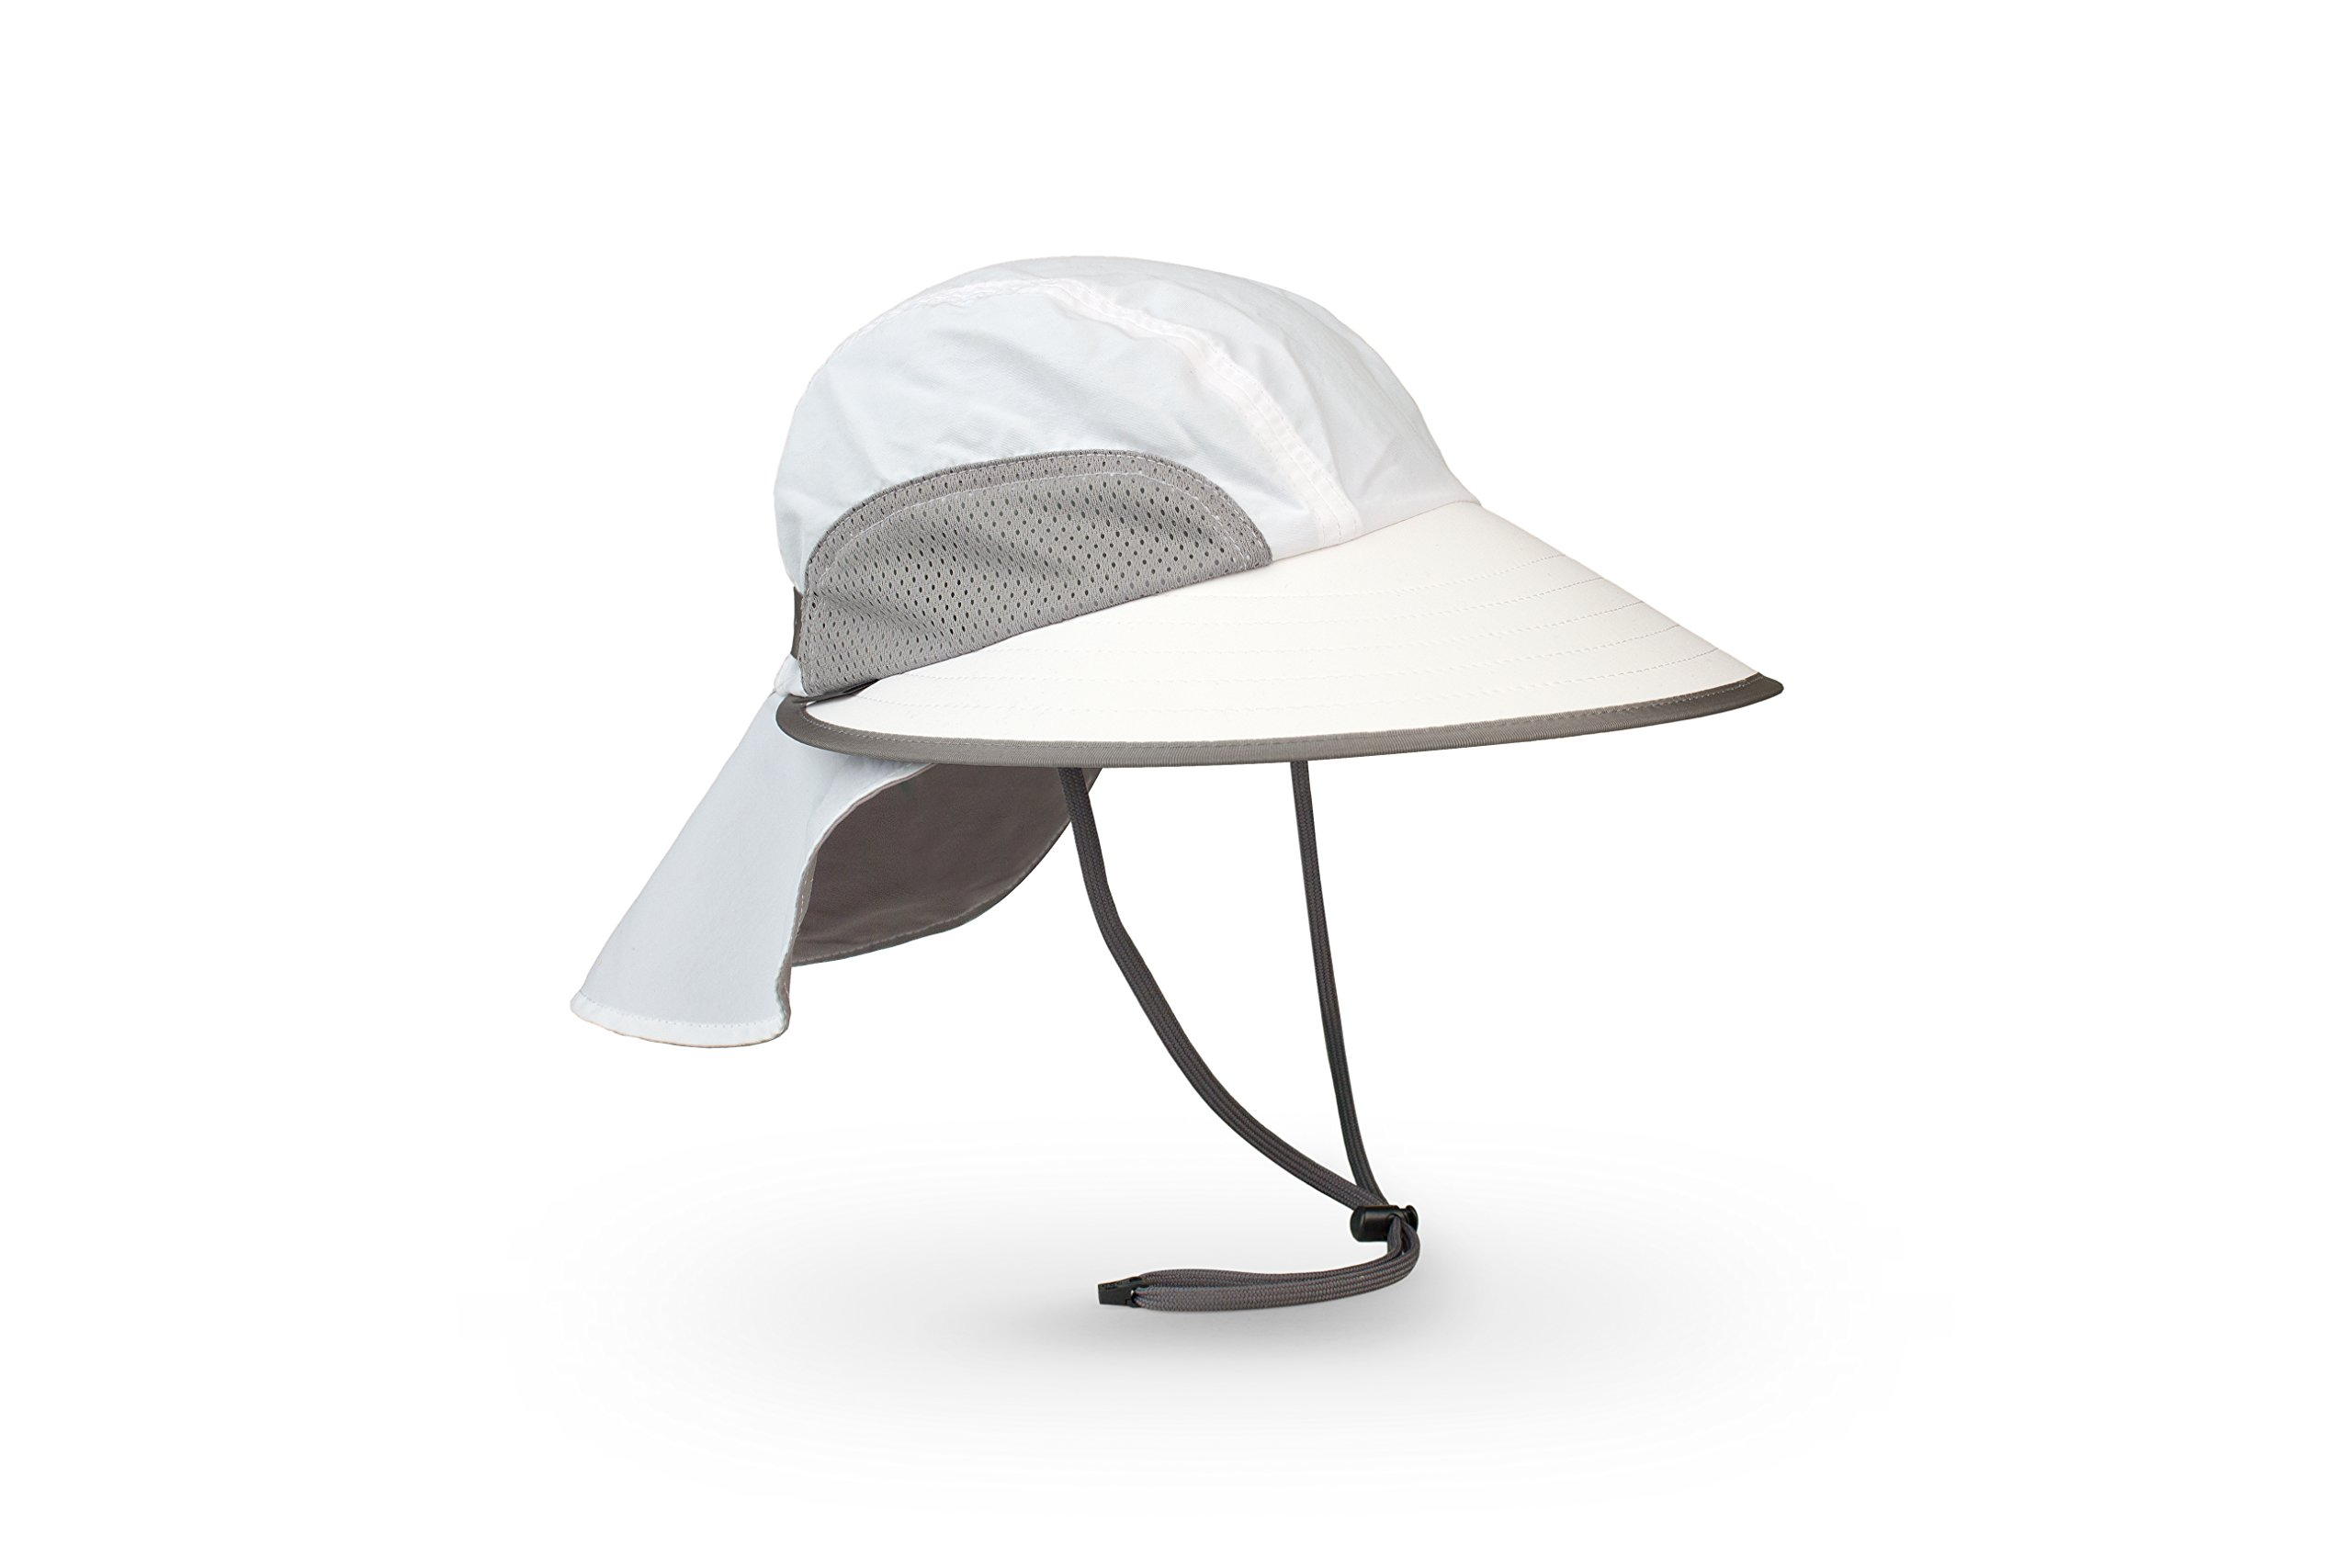 Sunday Afternoons Sport Hat, White, Large by Sunday Afternoons